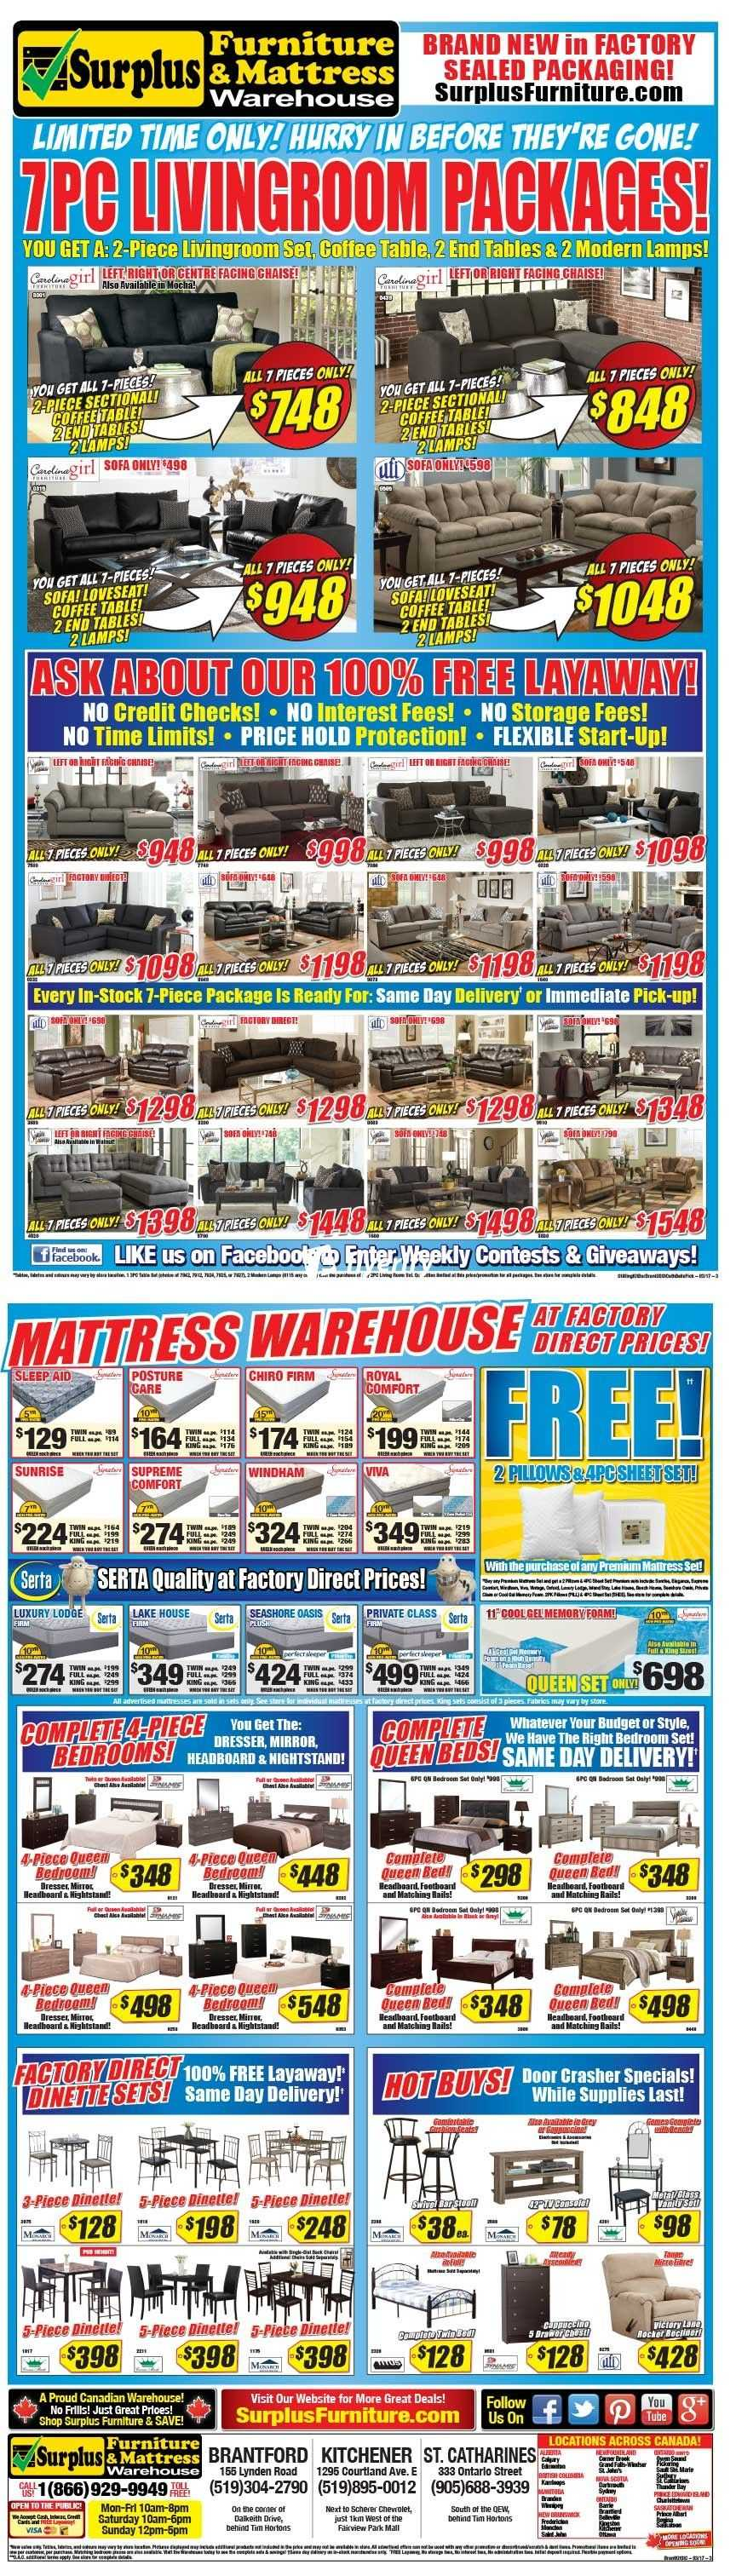 Surplus Furniture Kitchener Surplus Furniture Mattress Warehouse Kitchener Flyer March 21